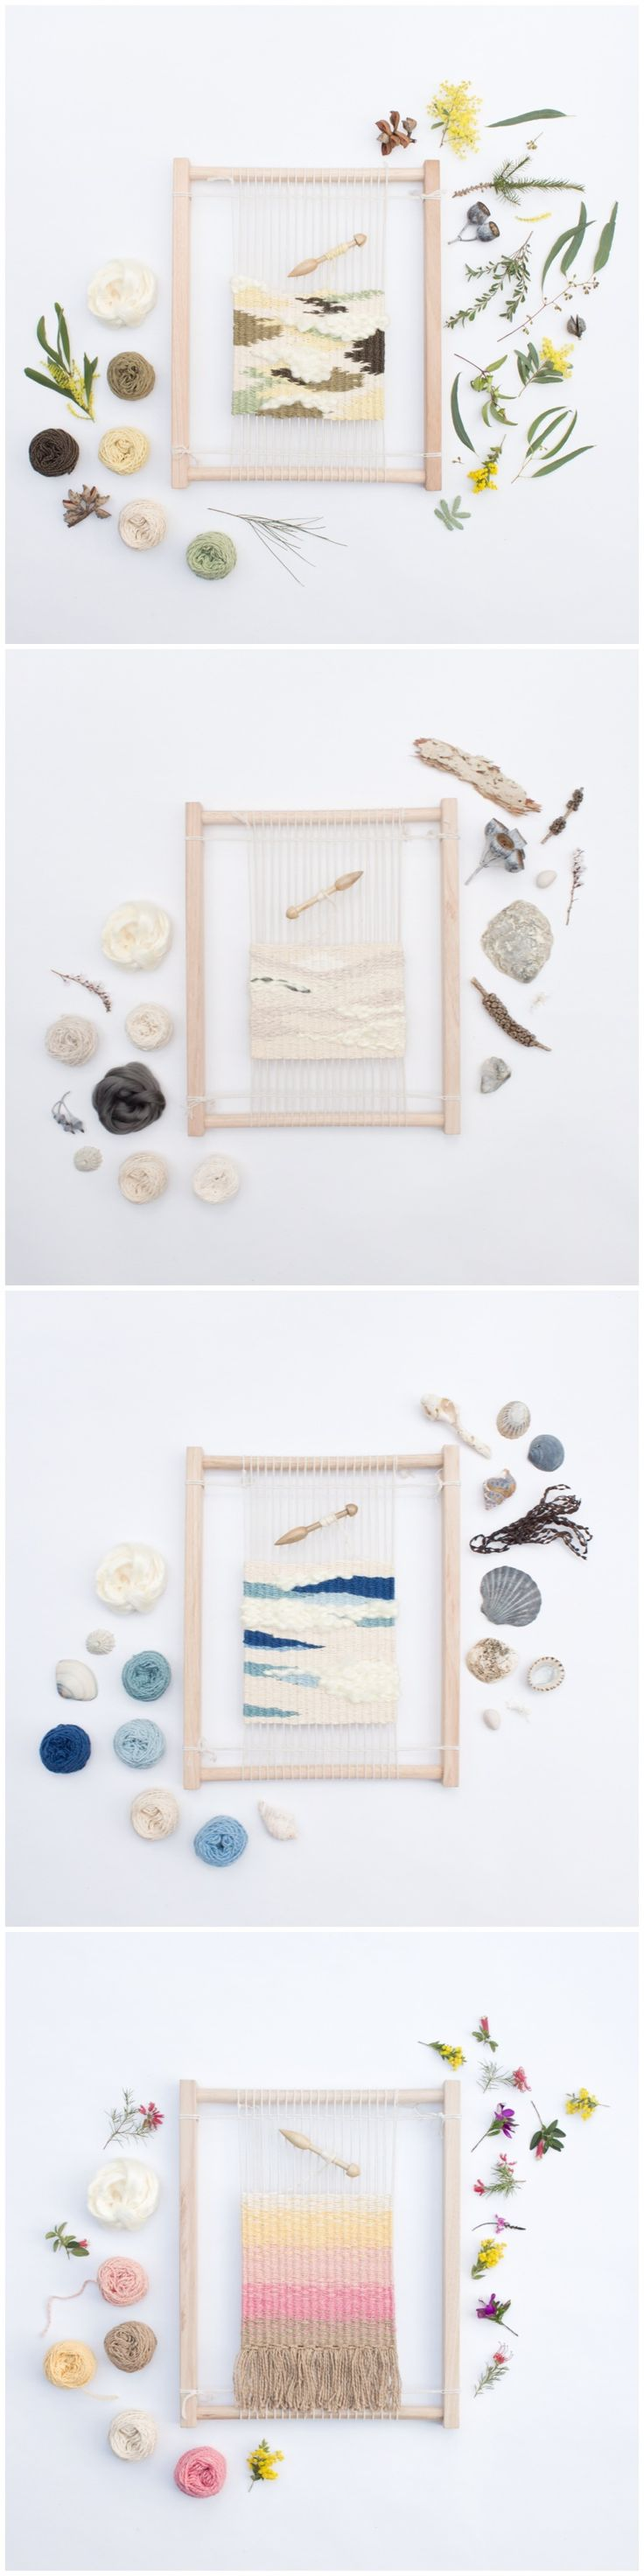 Limited edition Eco Weaving Kit by Alchemy. A handmade, 14 piece beginners weaving kit featuring an artisan made wooden loom and bobbin and natural dyed organic yarns. http://thealchemystore.bigcartel.com #textile #fibers #matieres #materials #textures #red #loom #weaving